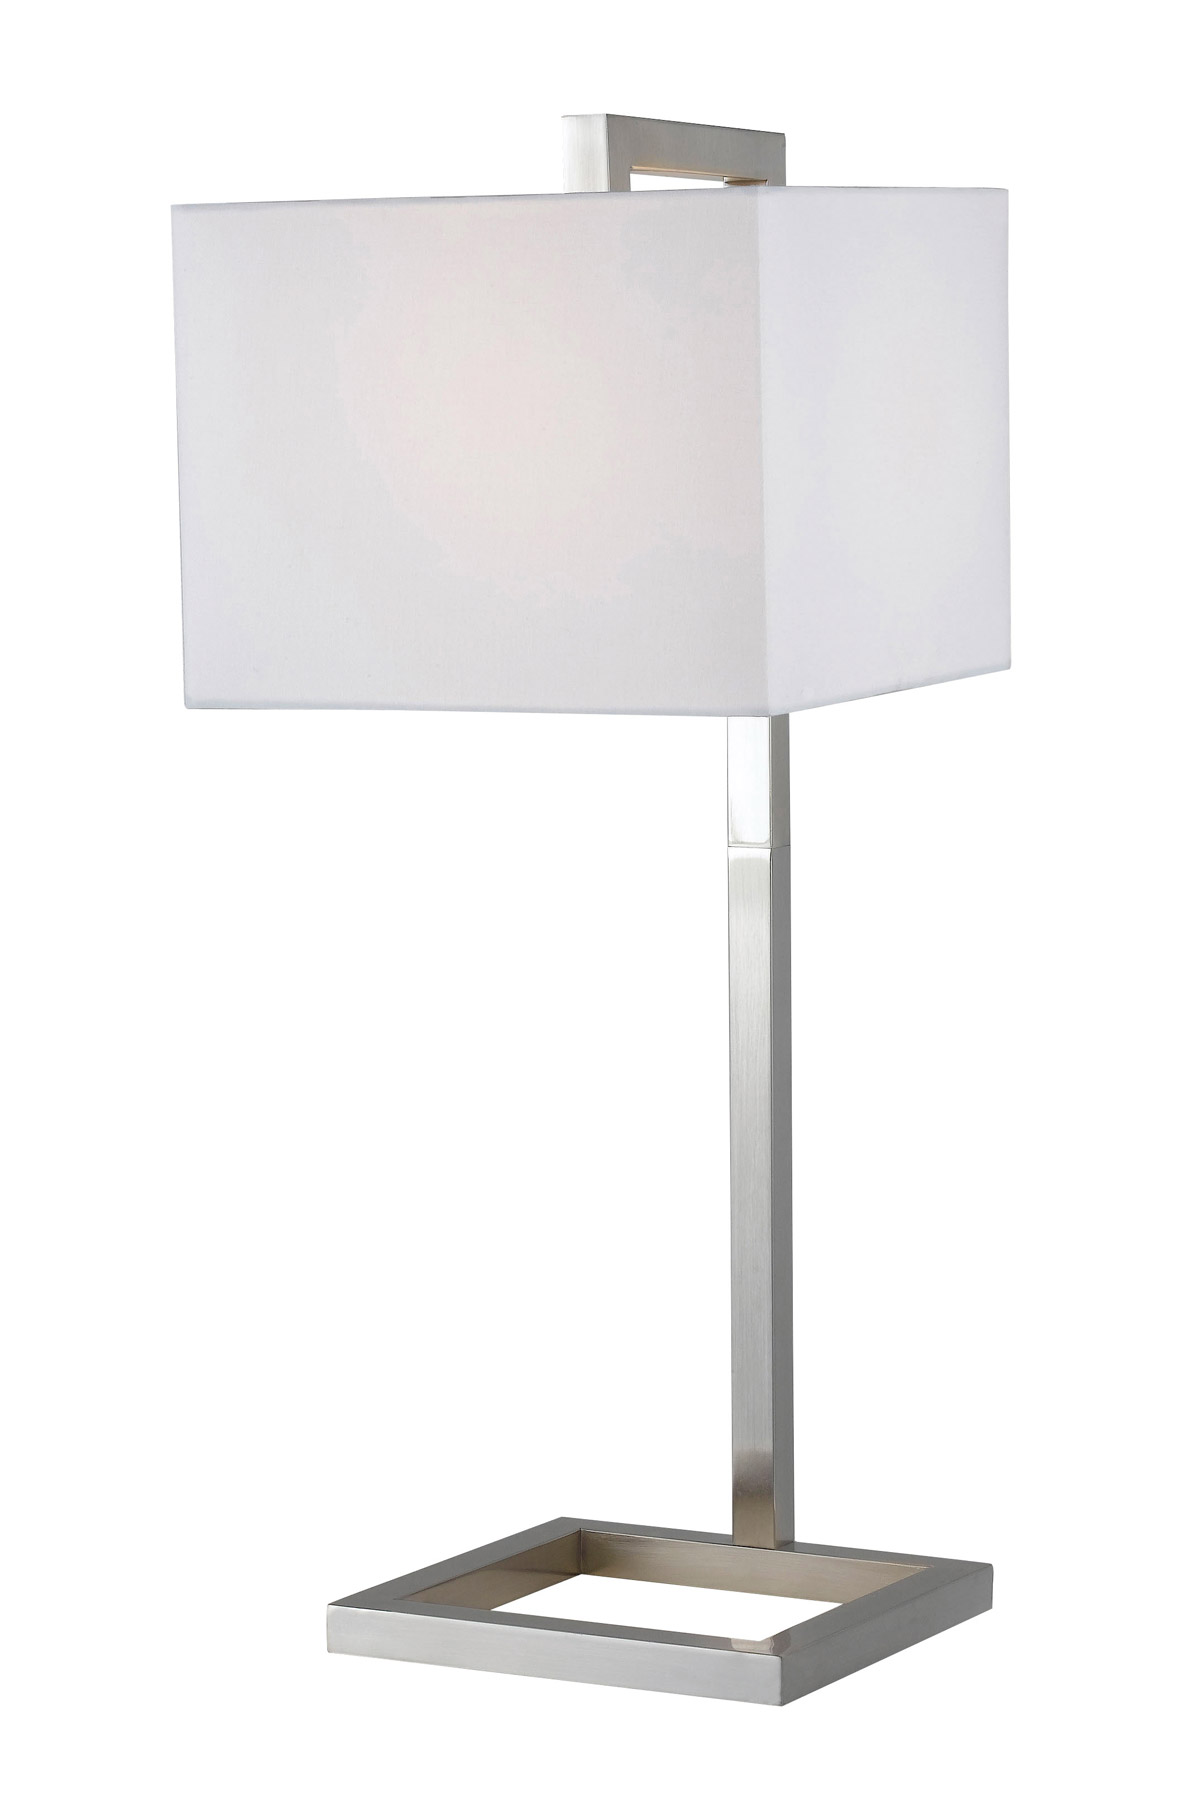 Home 21079BS 4 Square Desk Lamp